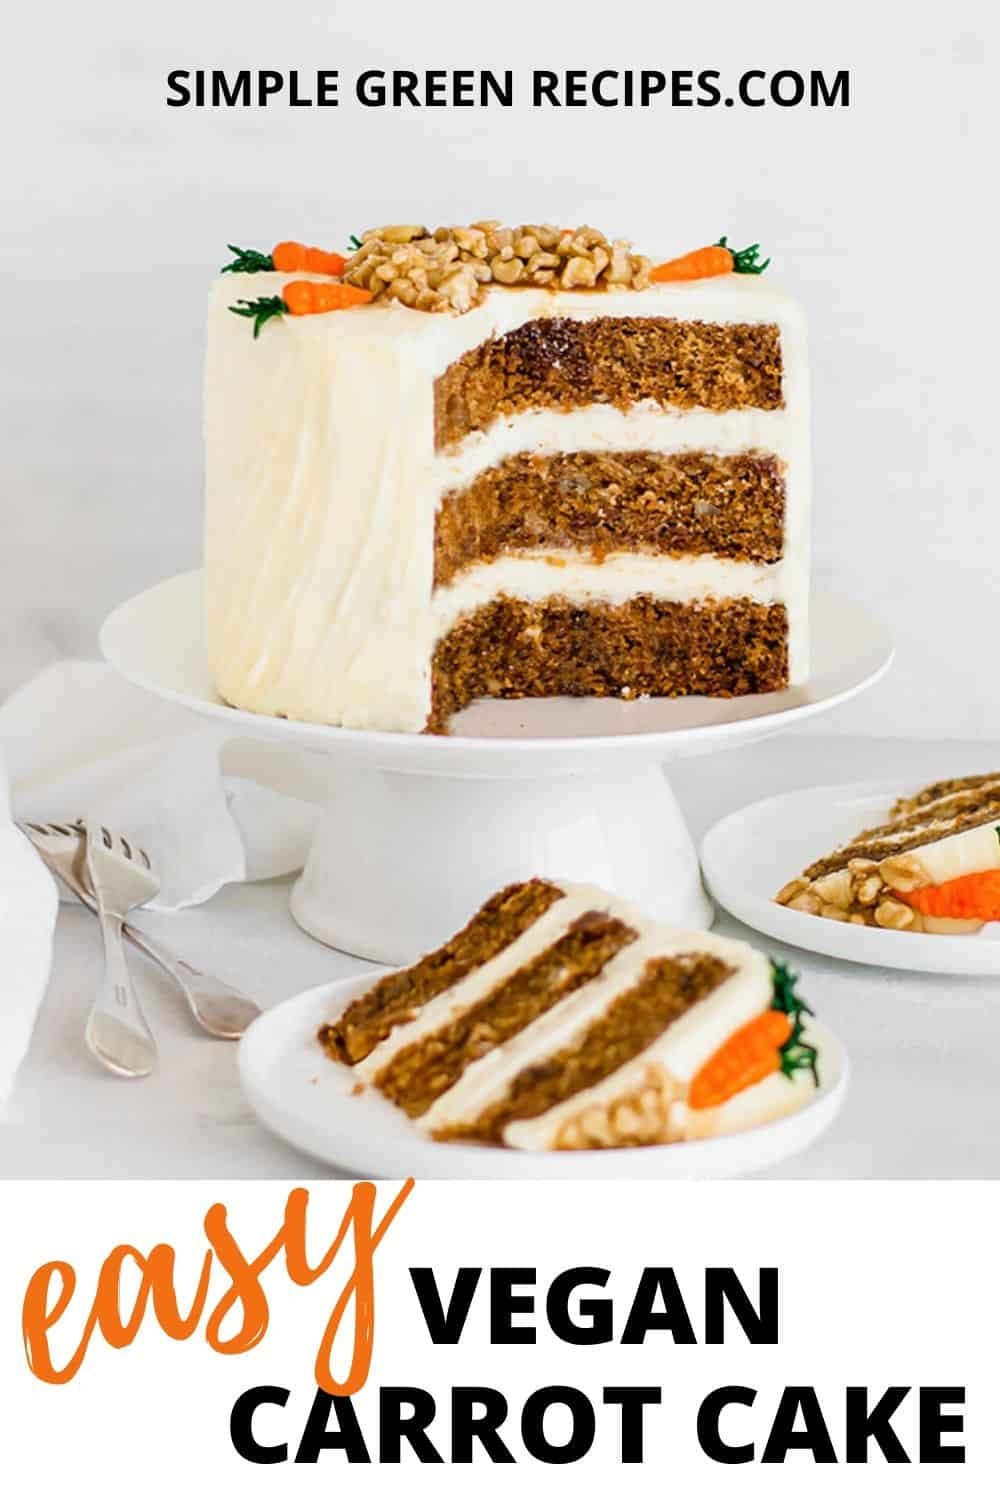 cut carrot cake on a white stand next to two slices of cake on two white plates